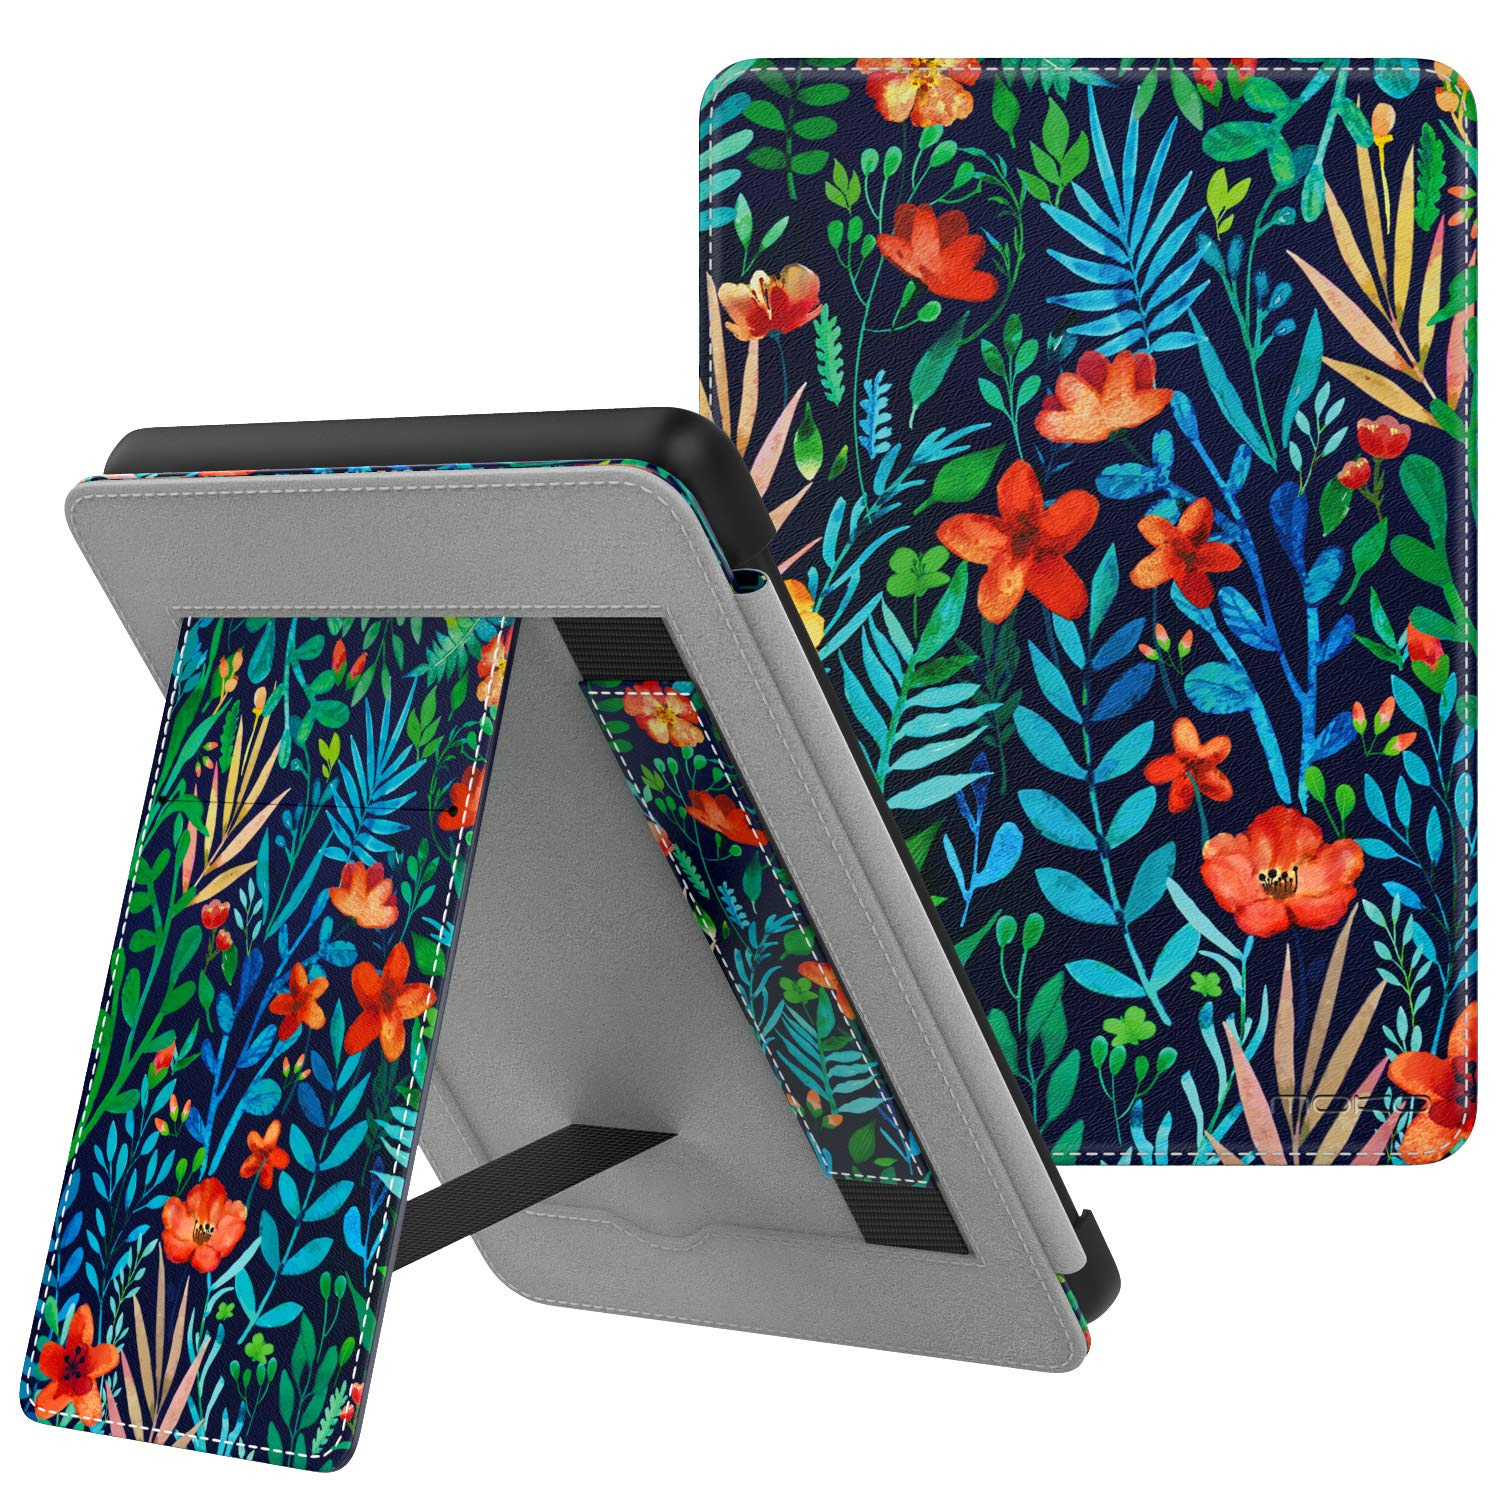 MoKo Case Fits Kindle Paperwhite (10th Generation, 2018 Releases), Lightweight PU Leather Cover Stand Shell with Hand Strap for Amazon Kindle Paperwhite 2018 E-Reader - Jungle Night